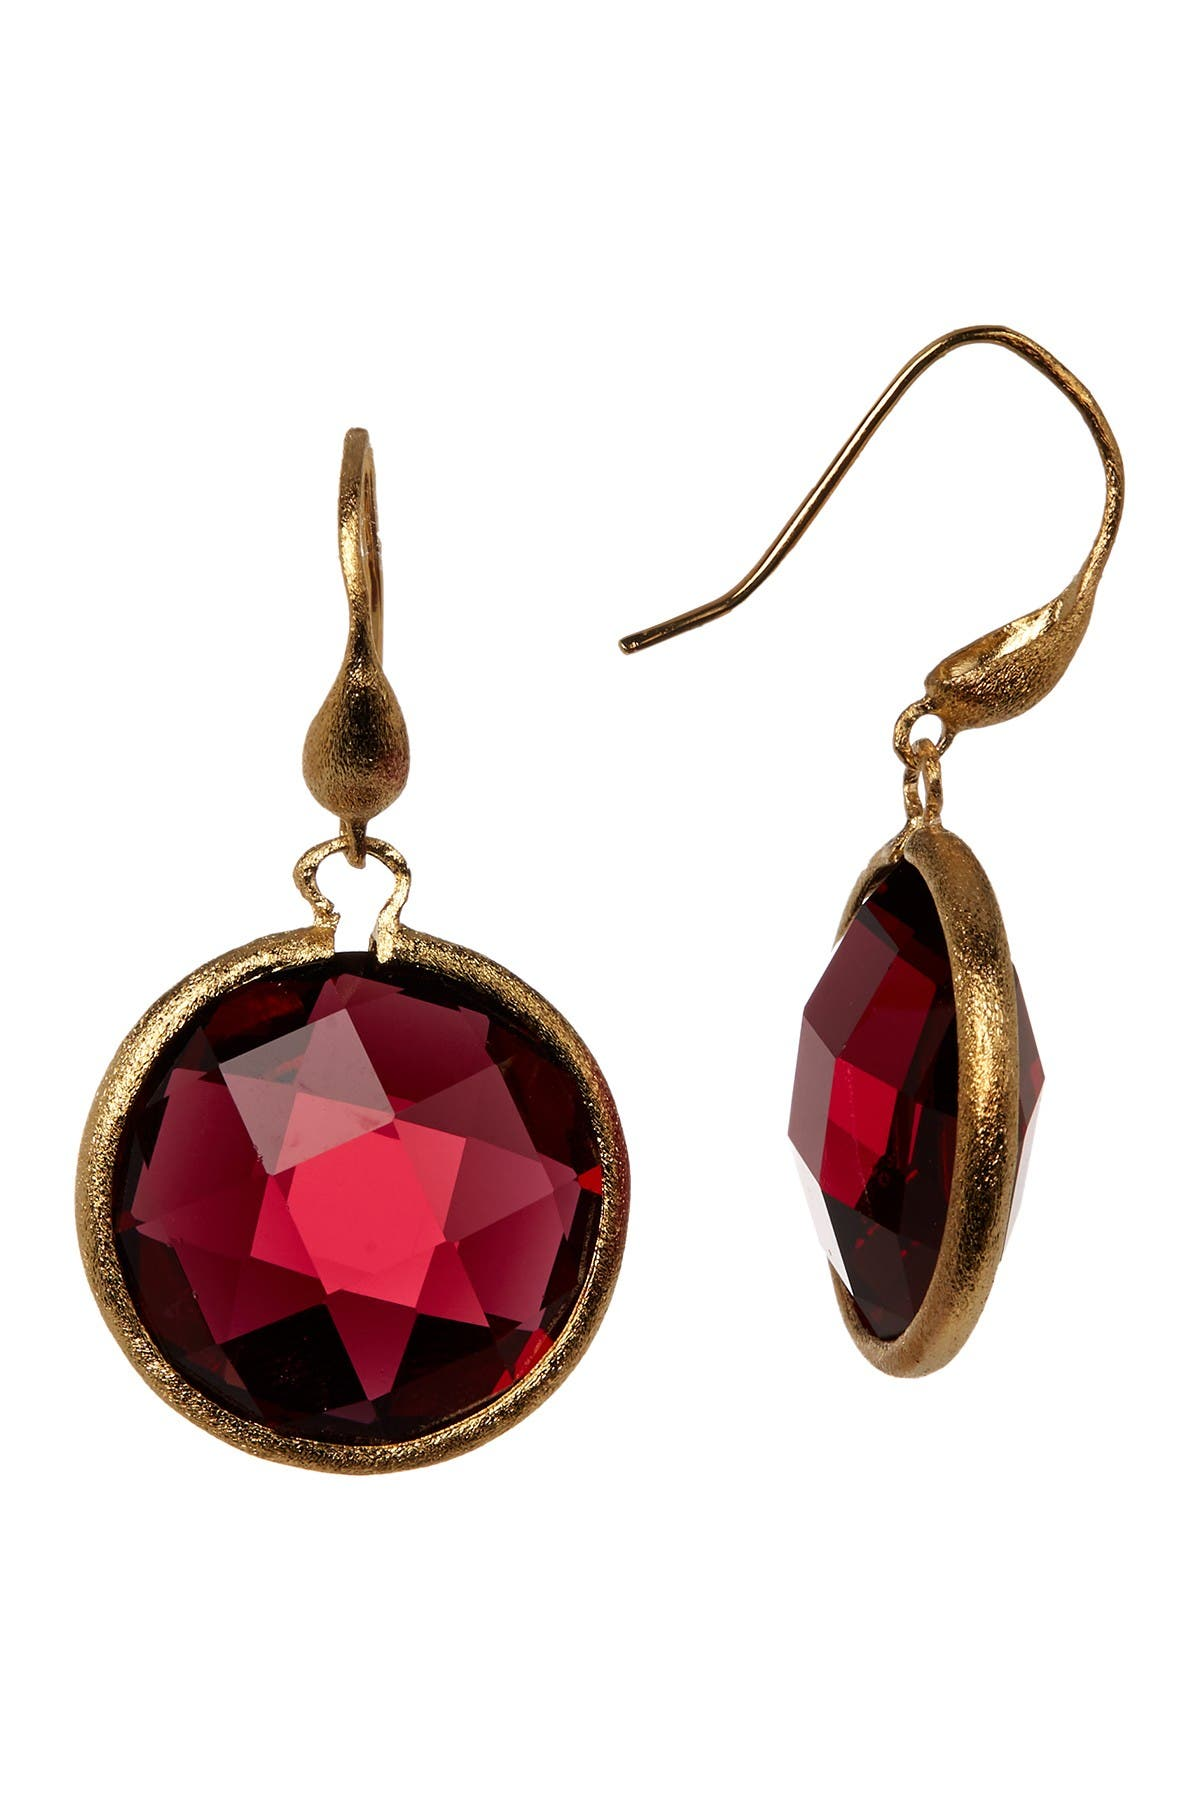 Image of Rivka Friedman Faceted Round Rubellite Crystal Dangle Earrings